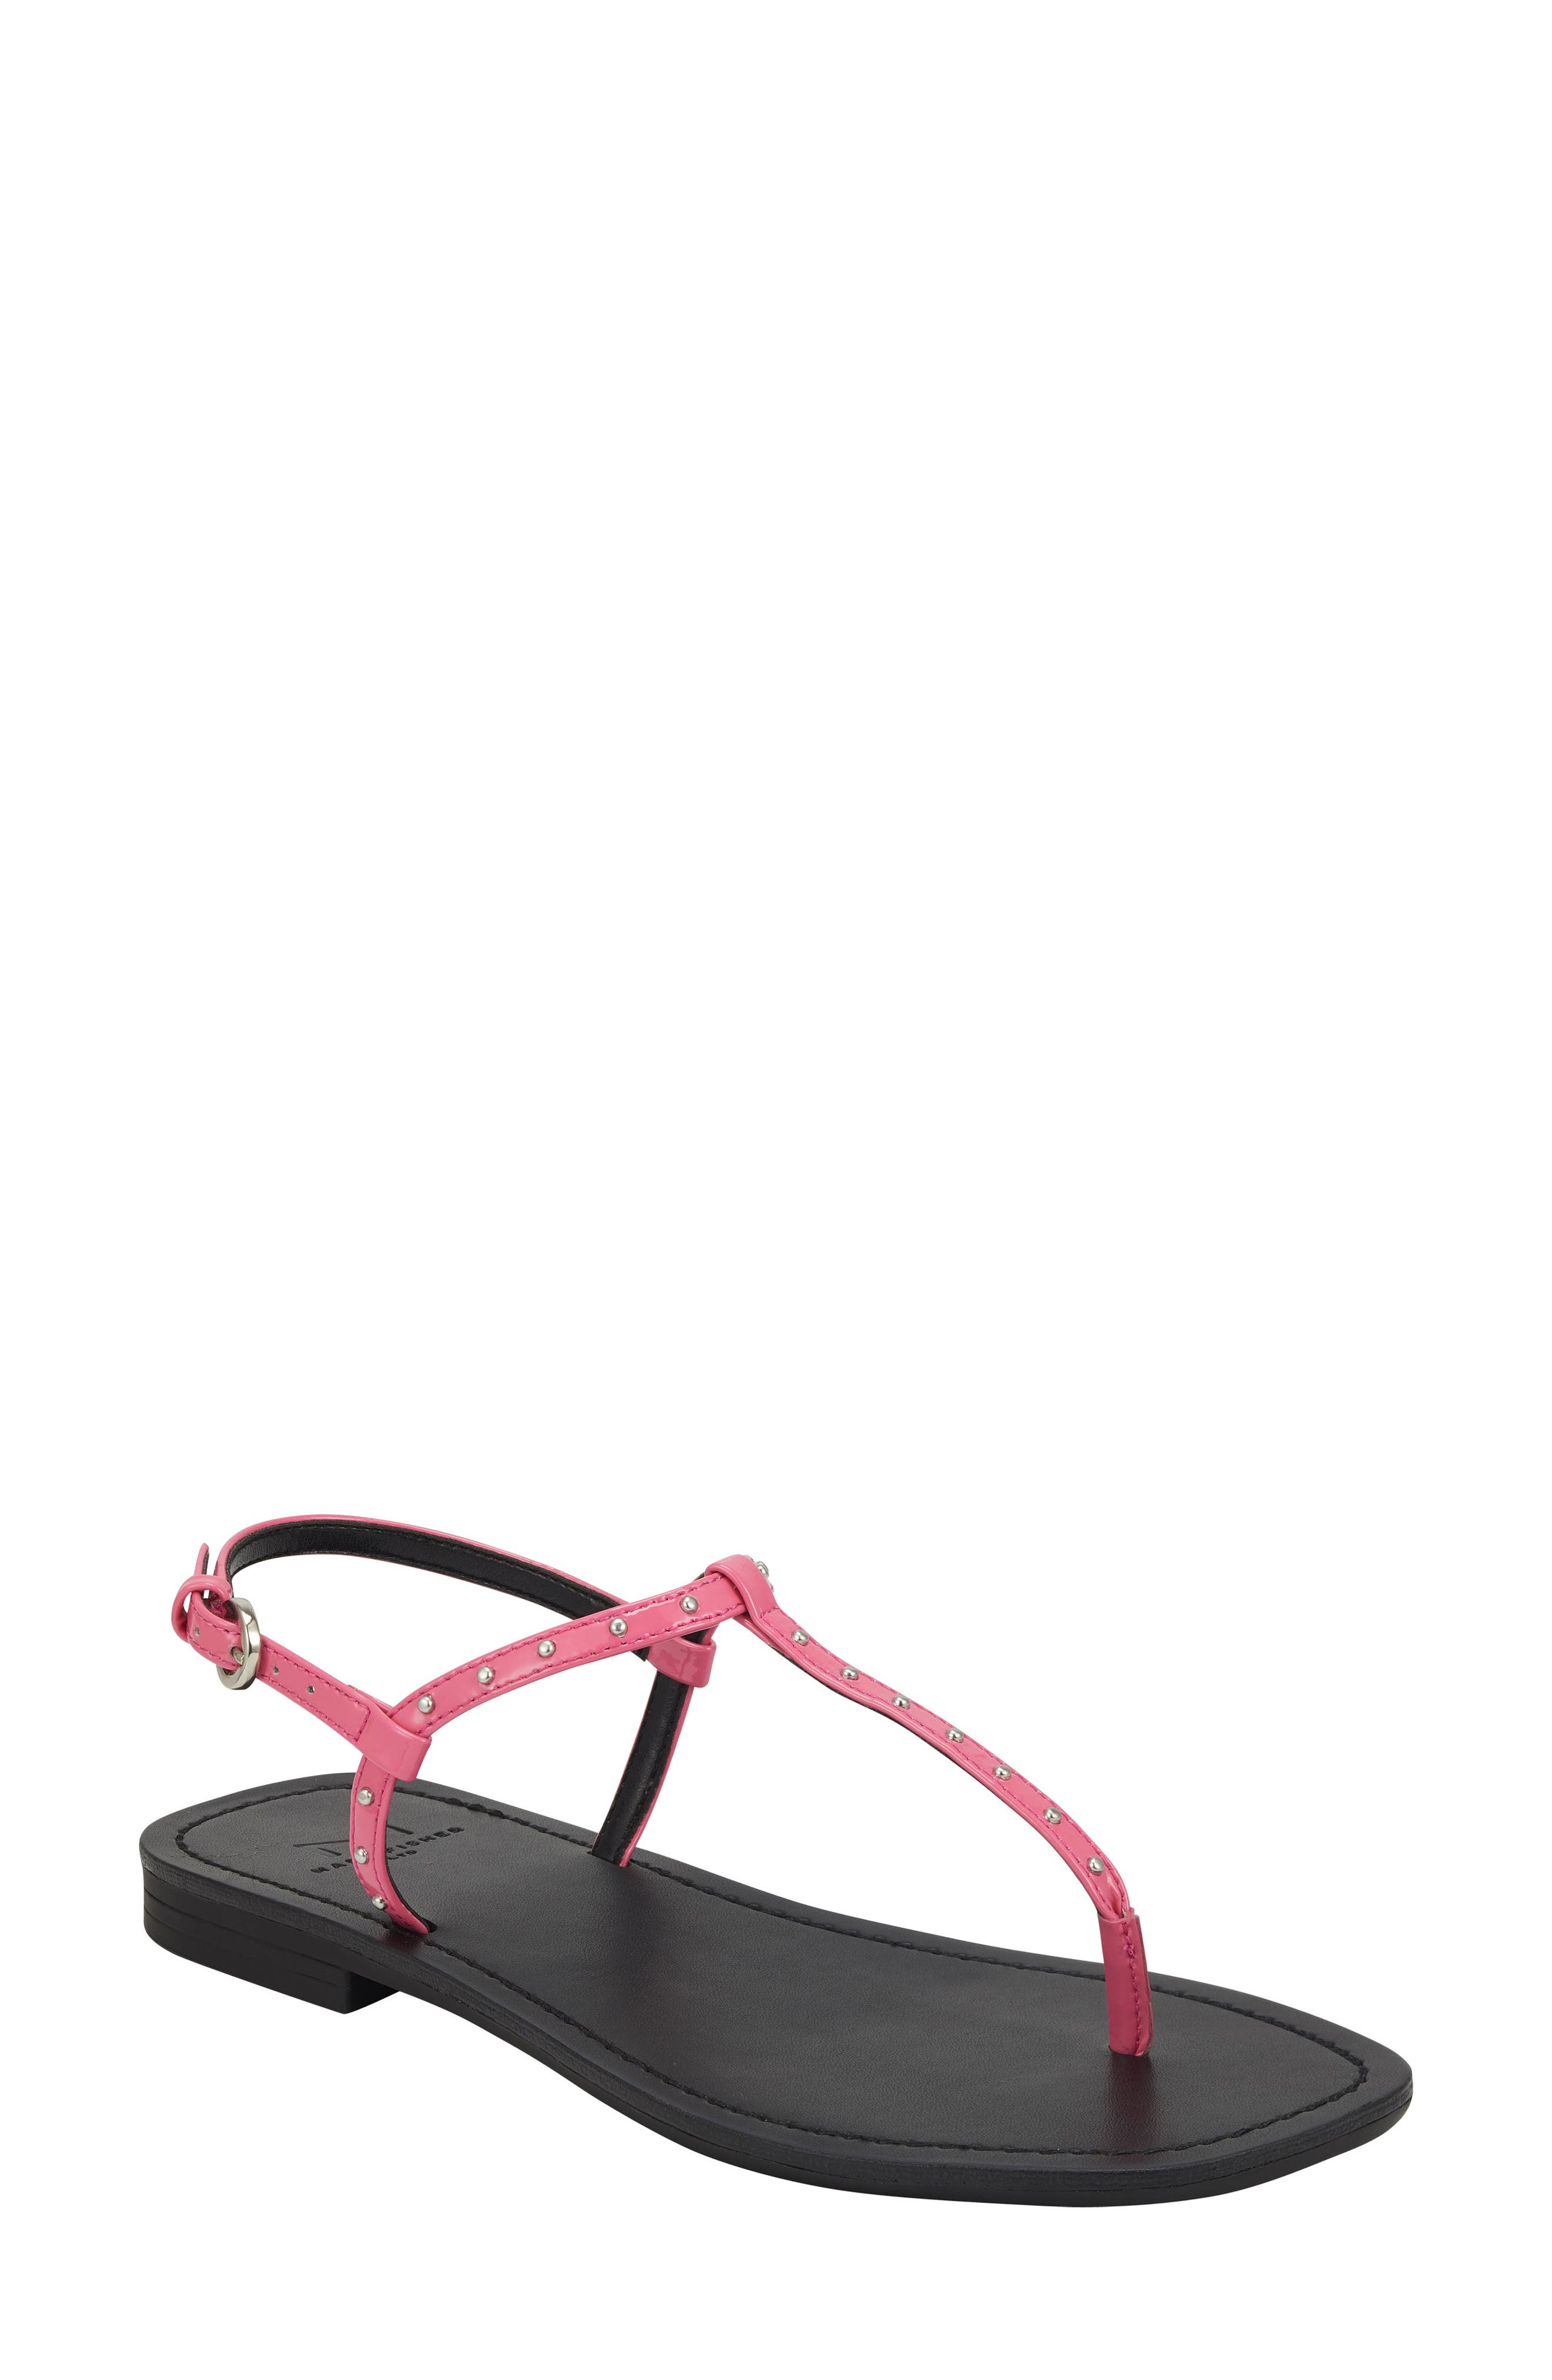 Polished studs highlight the slender straps of a classic thong-strap sandal that\\\'s updated with a trendy angled toe. Style Name: Marc Fisher Ltd Fallona Studded Sandal (Women). Style Number: 6003489. Available in stores.